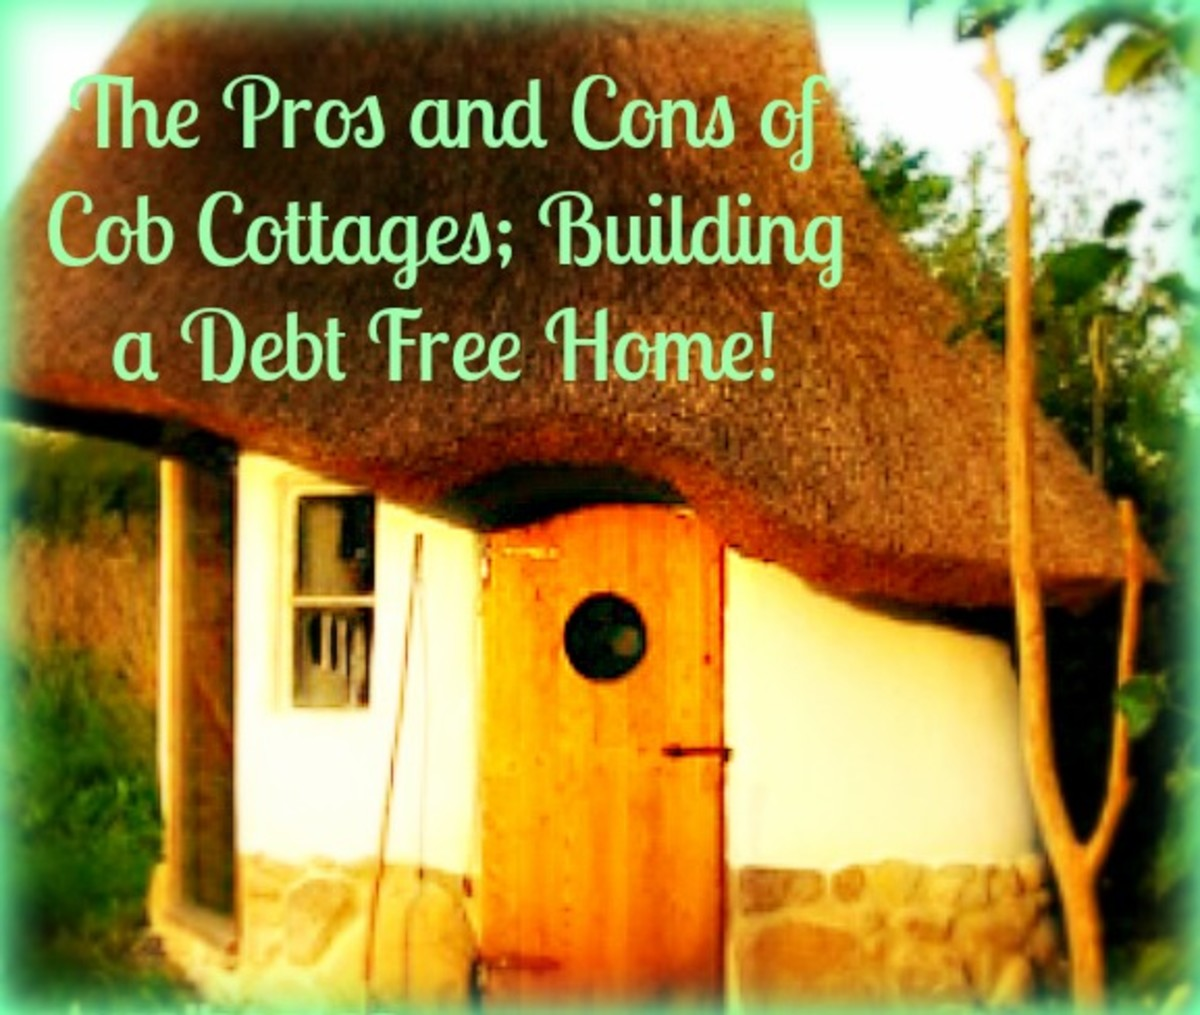 The Pros and Cons of Cob Cottages; Building a Debt Free Home!